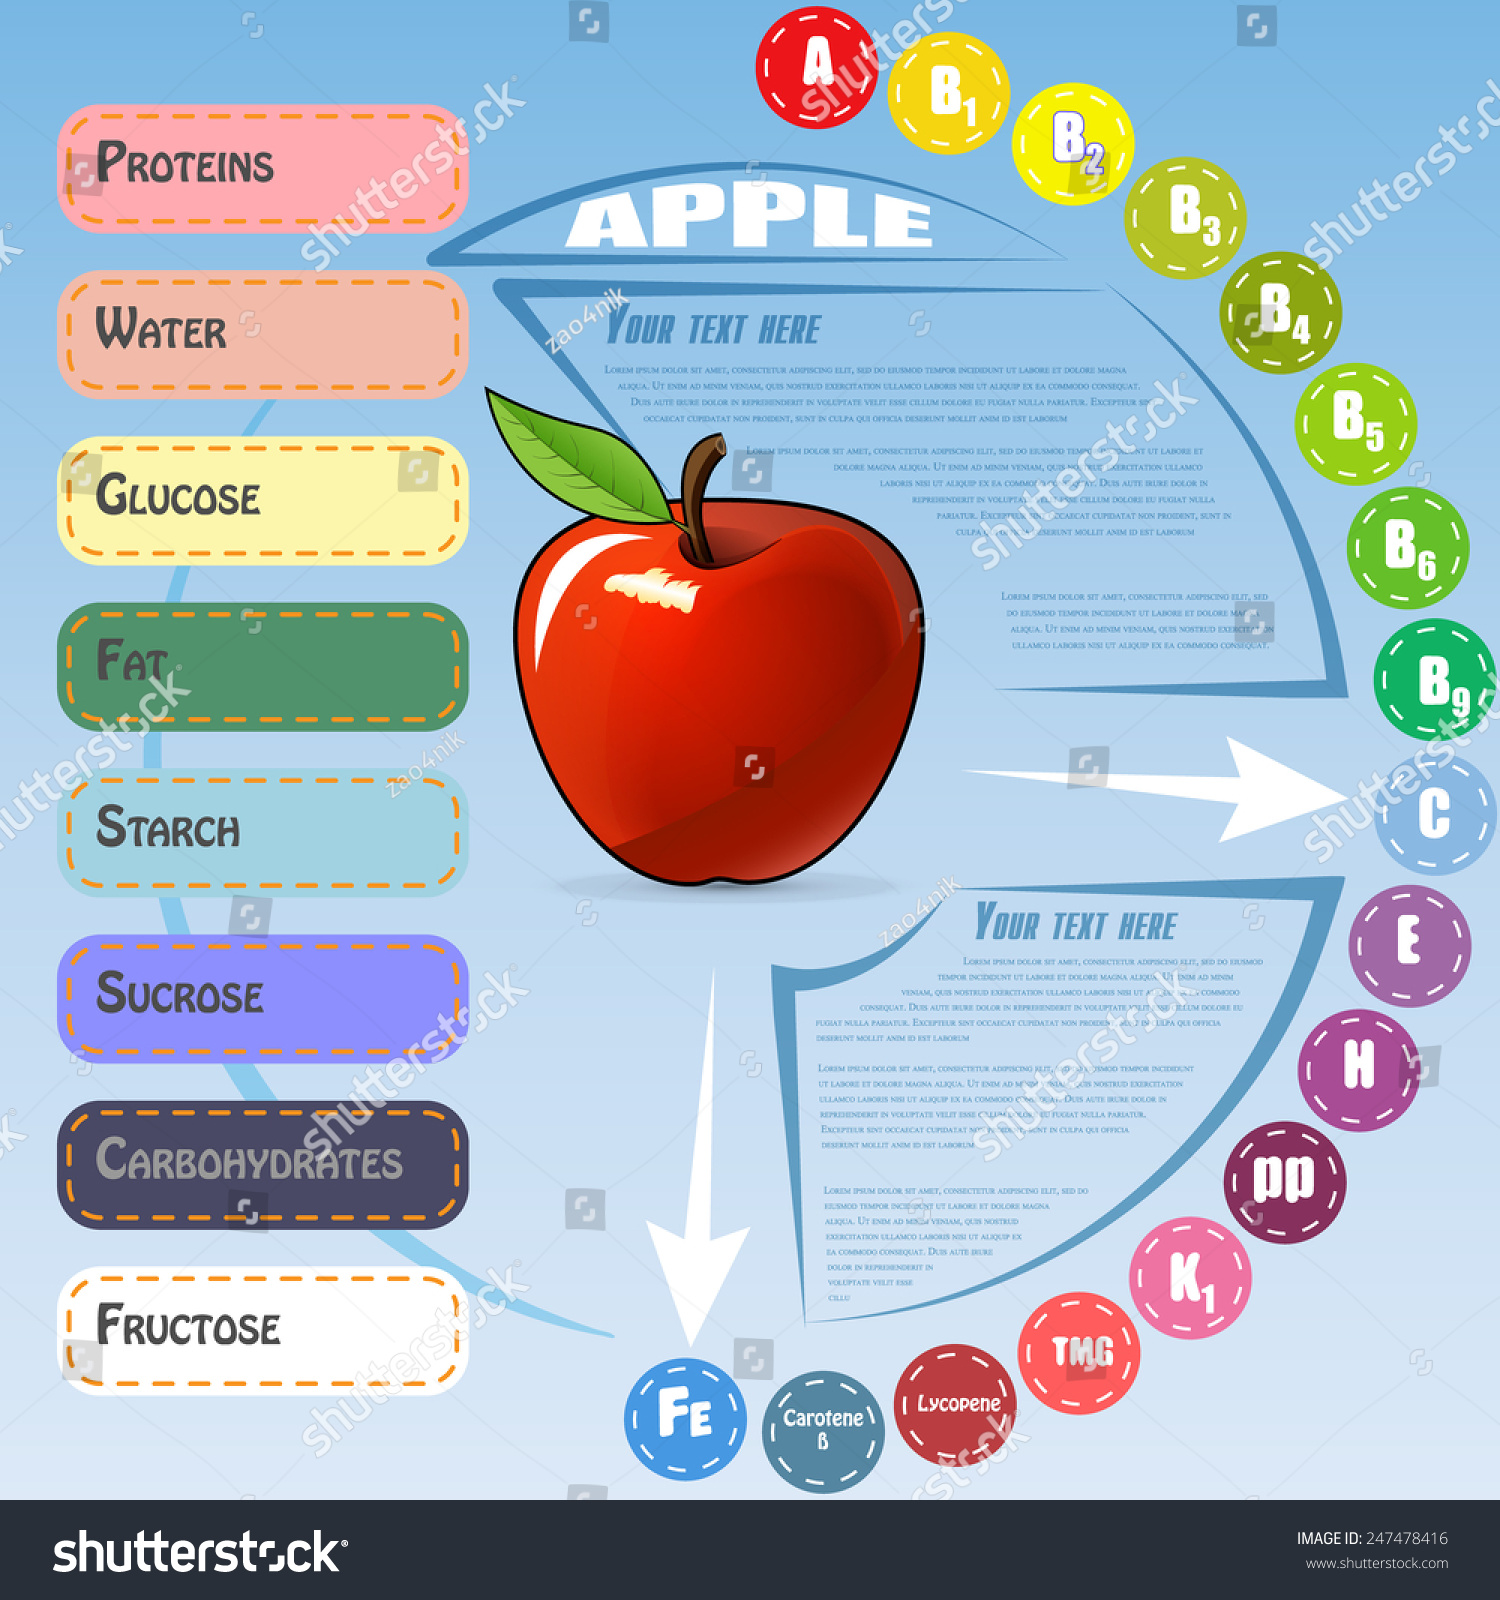 Vector infographic content vitamins minerals apple stock vector vector infographic for content of vitamins and minerals in apple on celestial background ccuart Image collections